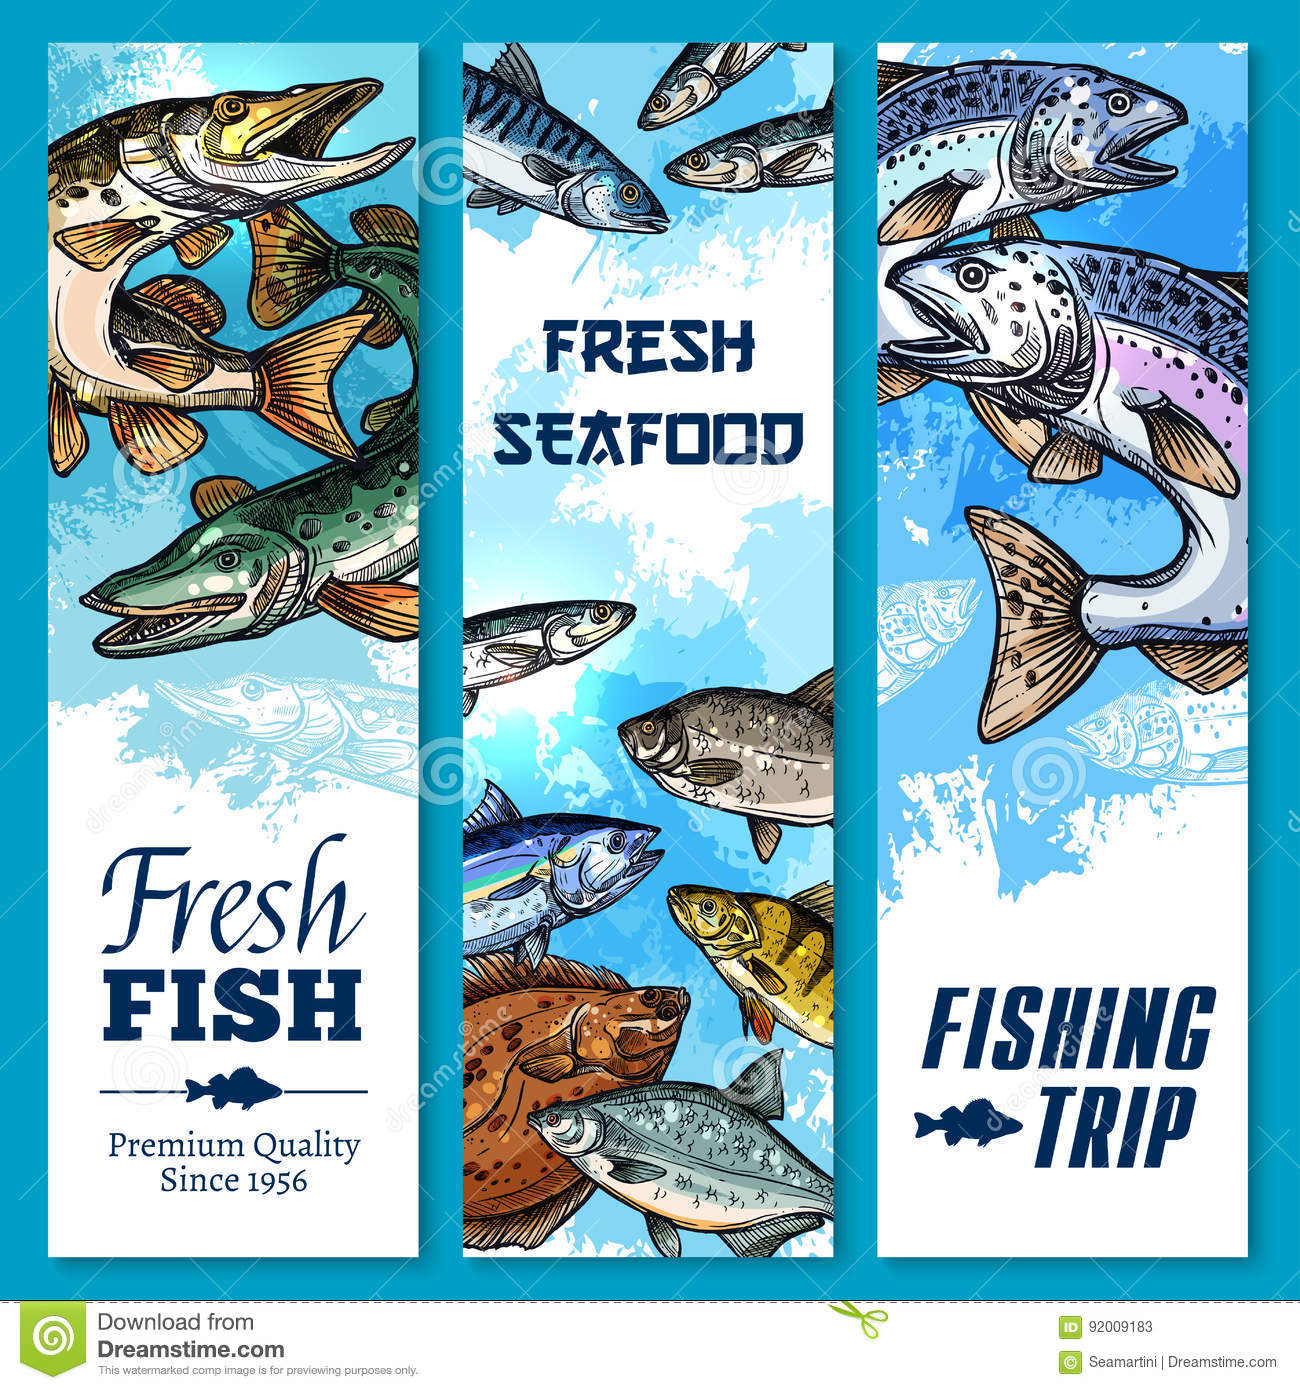 Vector banners of fishing trip and fish catch stock vector for Big 5 fishing license